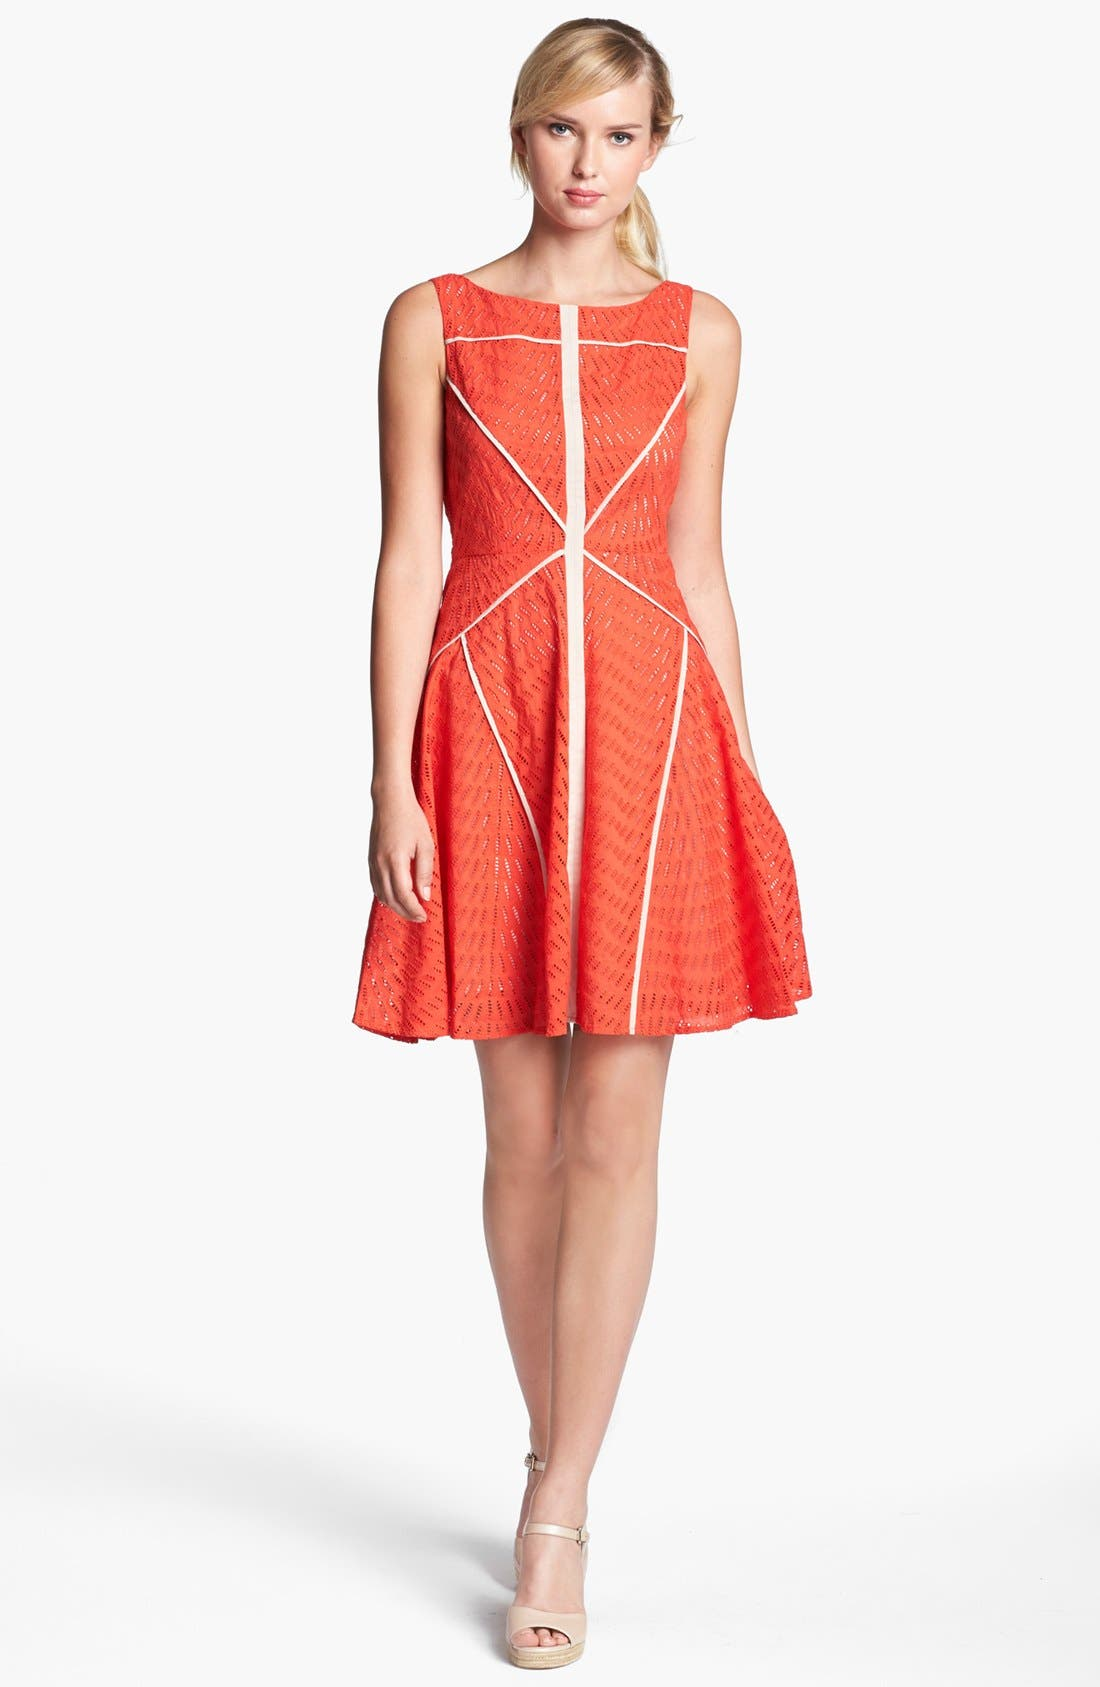 Alternate Image 1 Selected - Vince Camuto Sleeveless Fit & Flare Dress